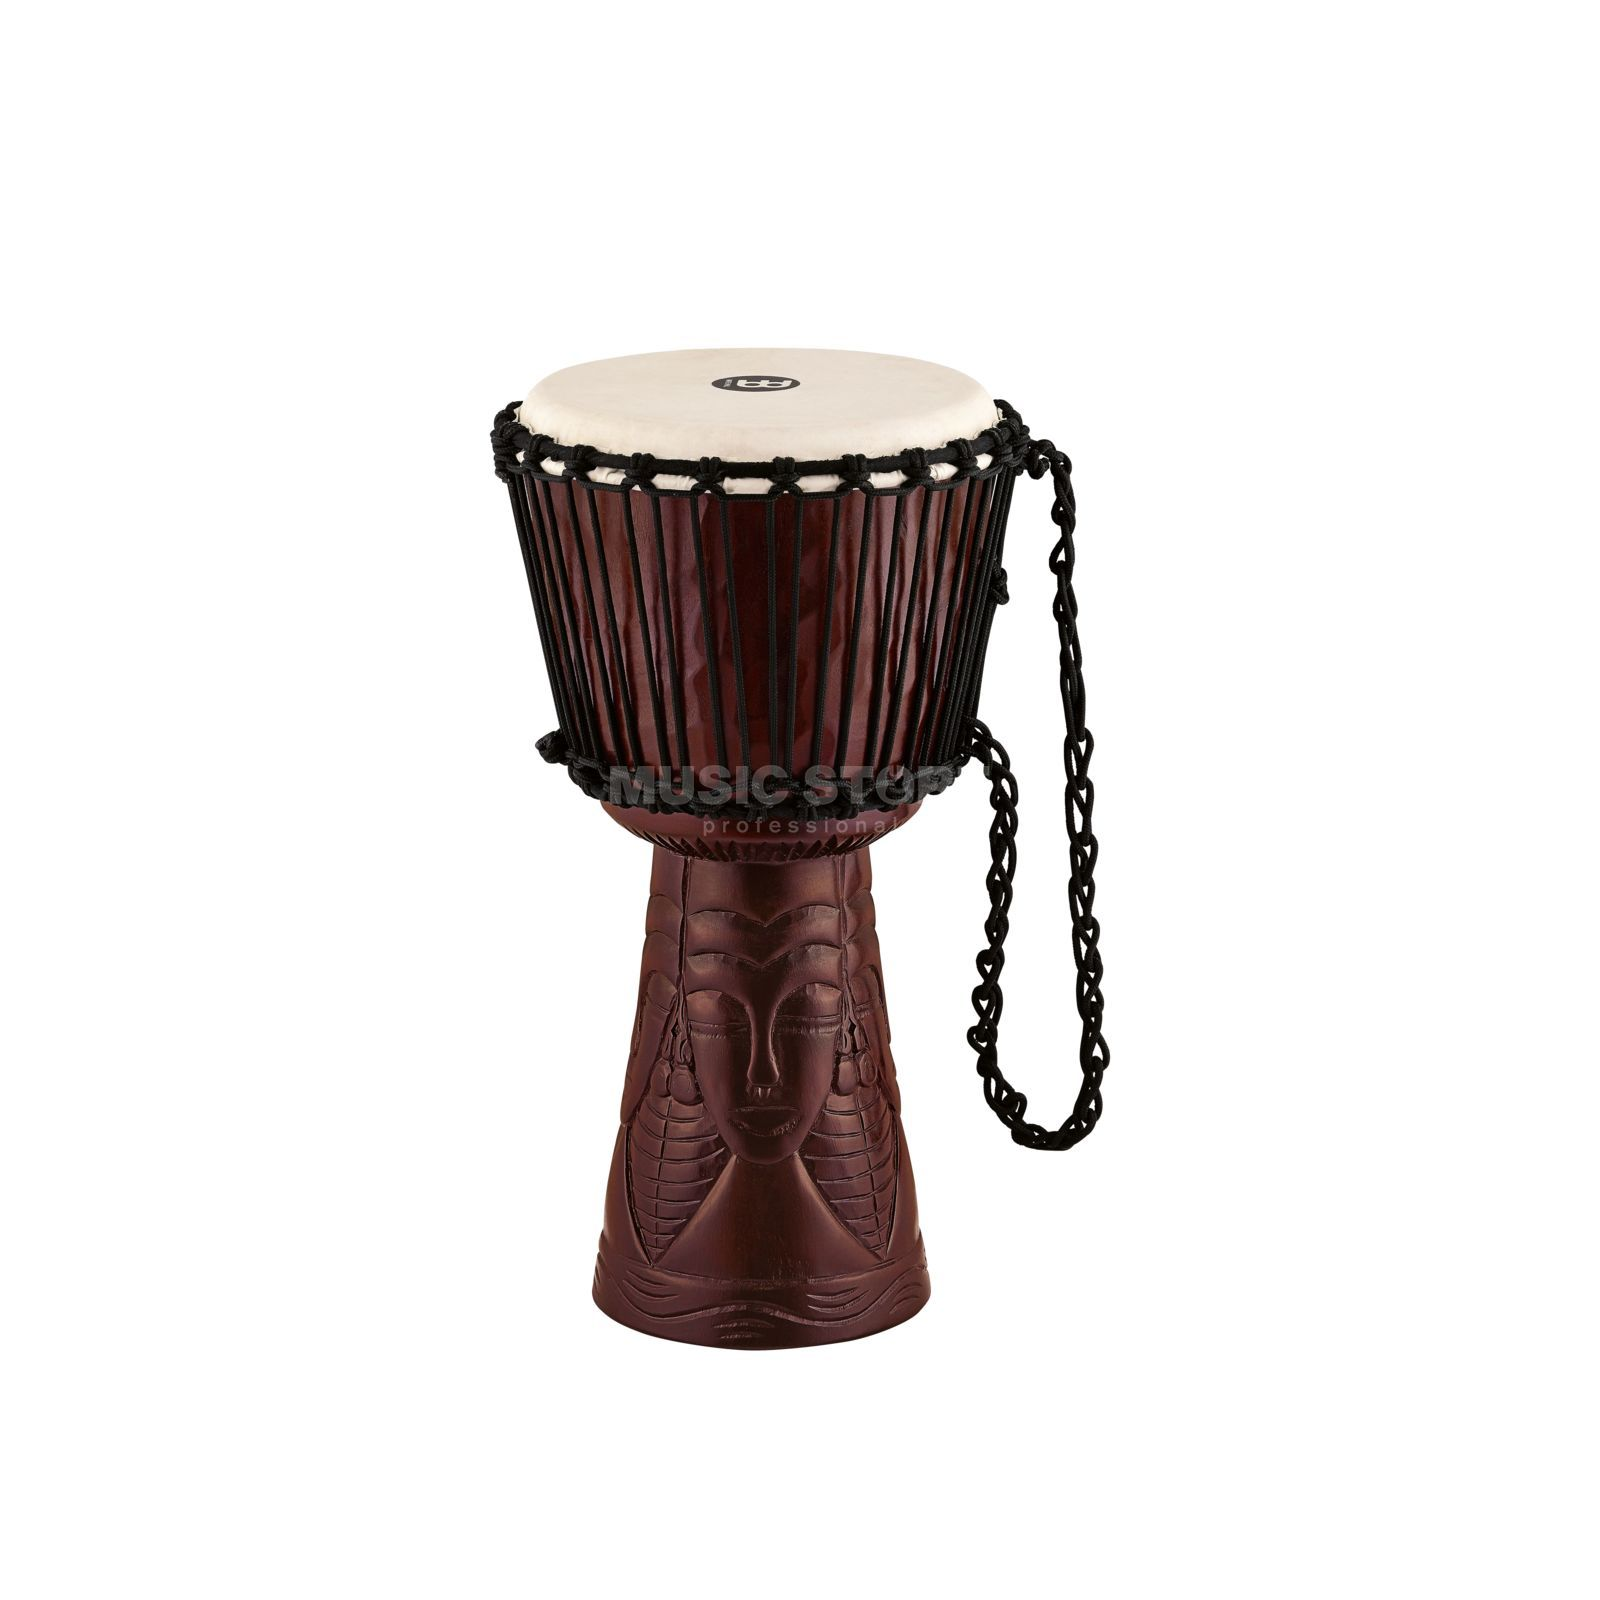 "Meinl Professional Djembe PROADJ4-M, 10"", African Style Product Image"